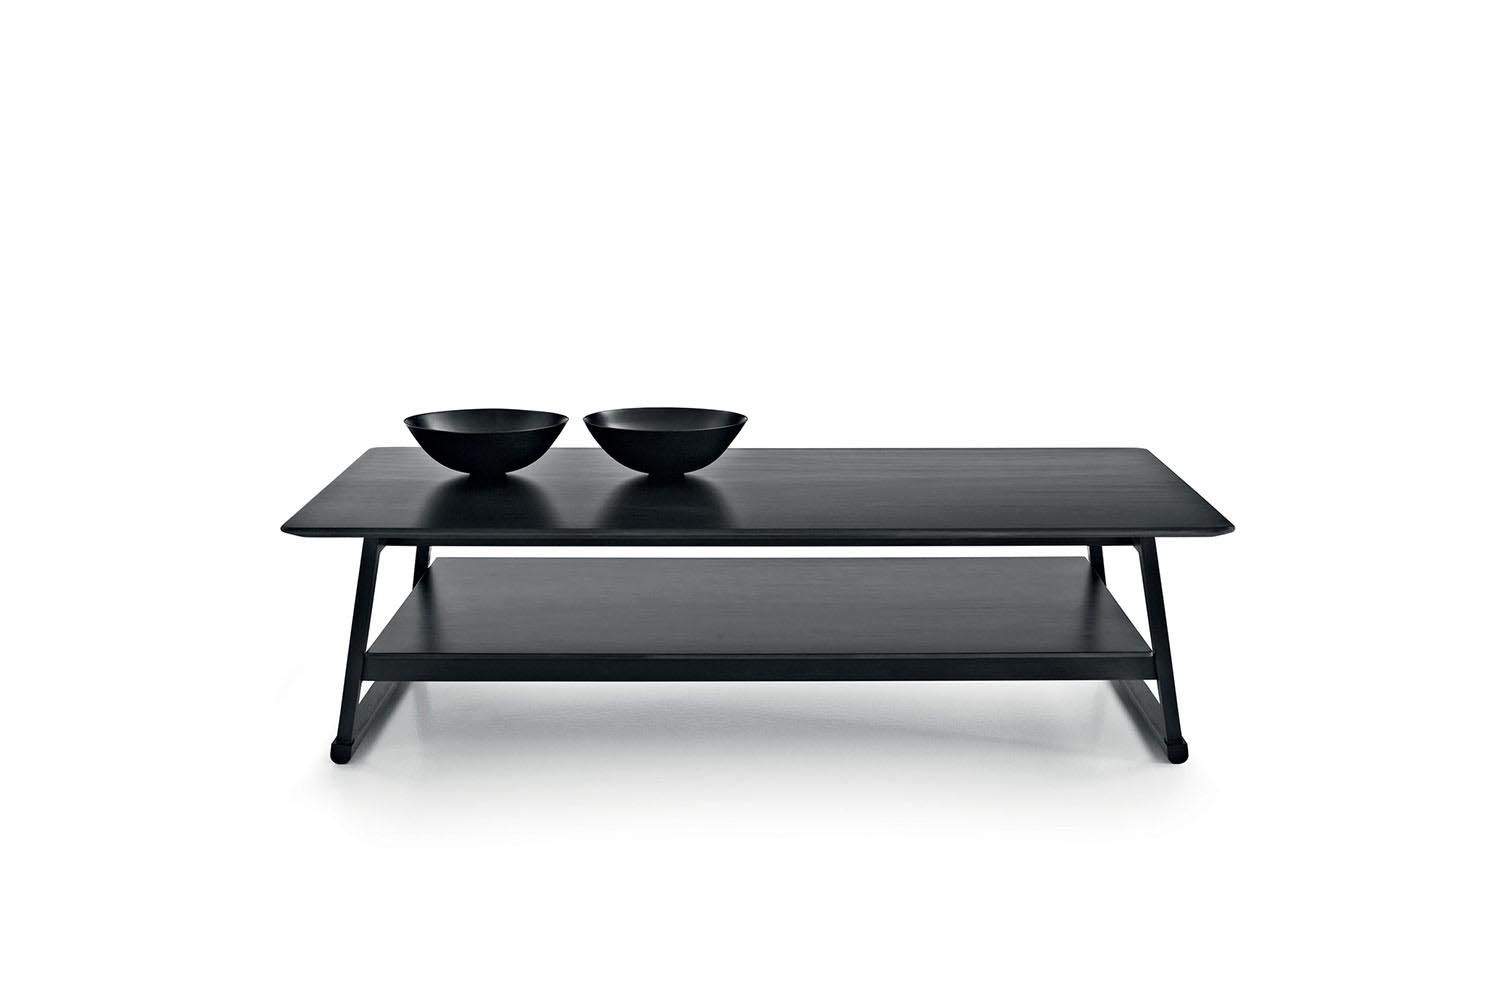 Recipio '14 Coffee Table by Antonio Citterio for Maxalto